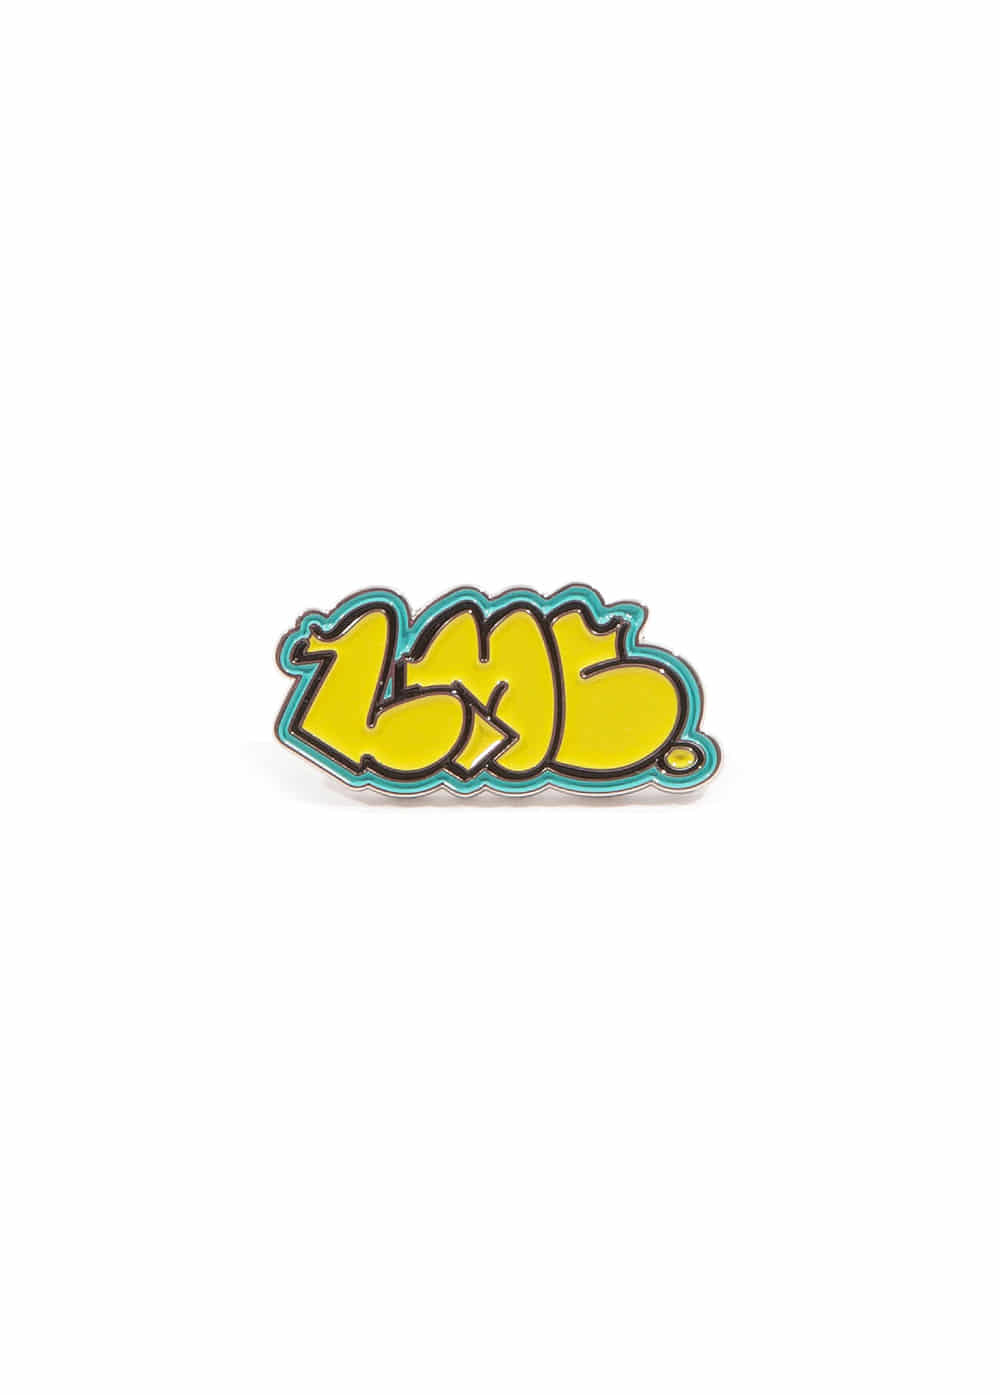 LMC GRAFFITI PIN BADGE